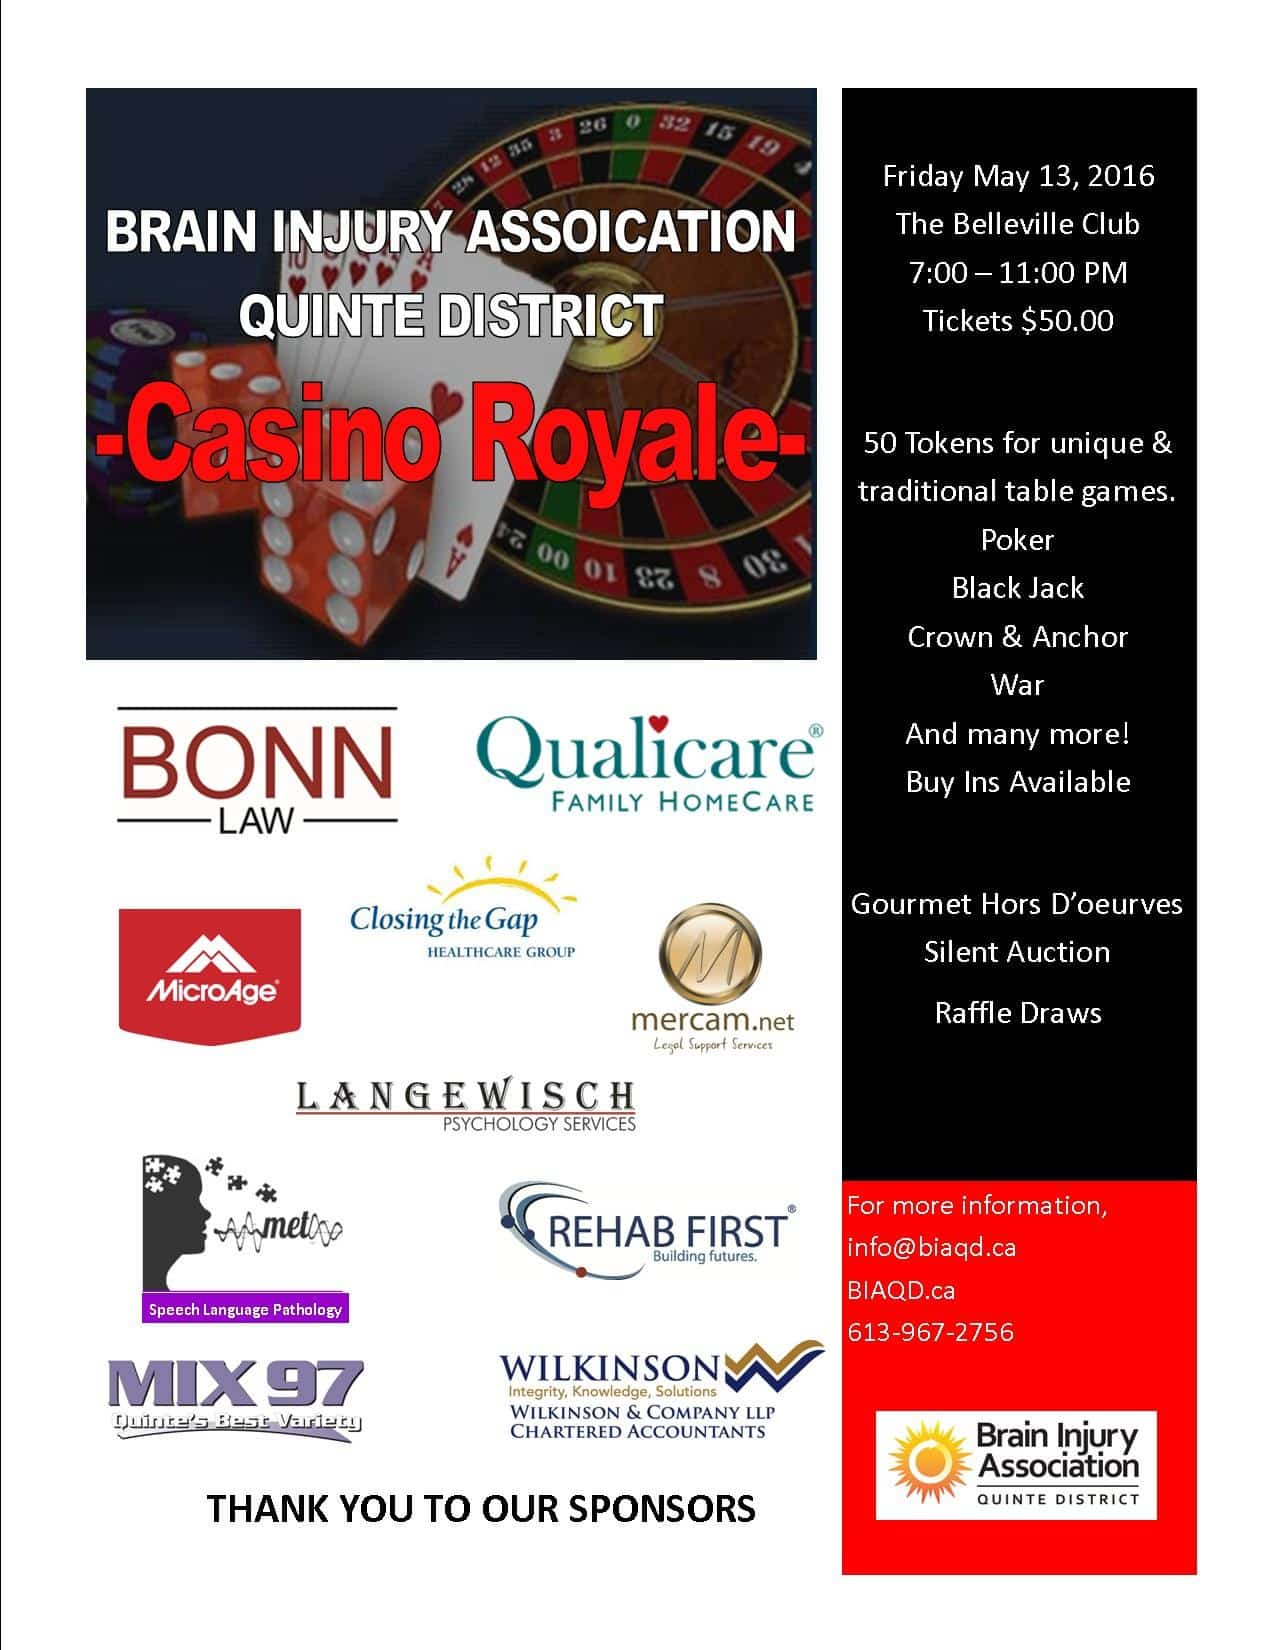 Brain Injury Association Belleville & Quinte District Casino Royale Night